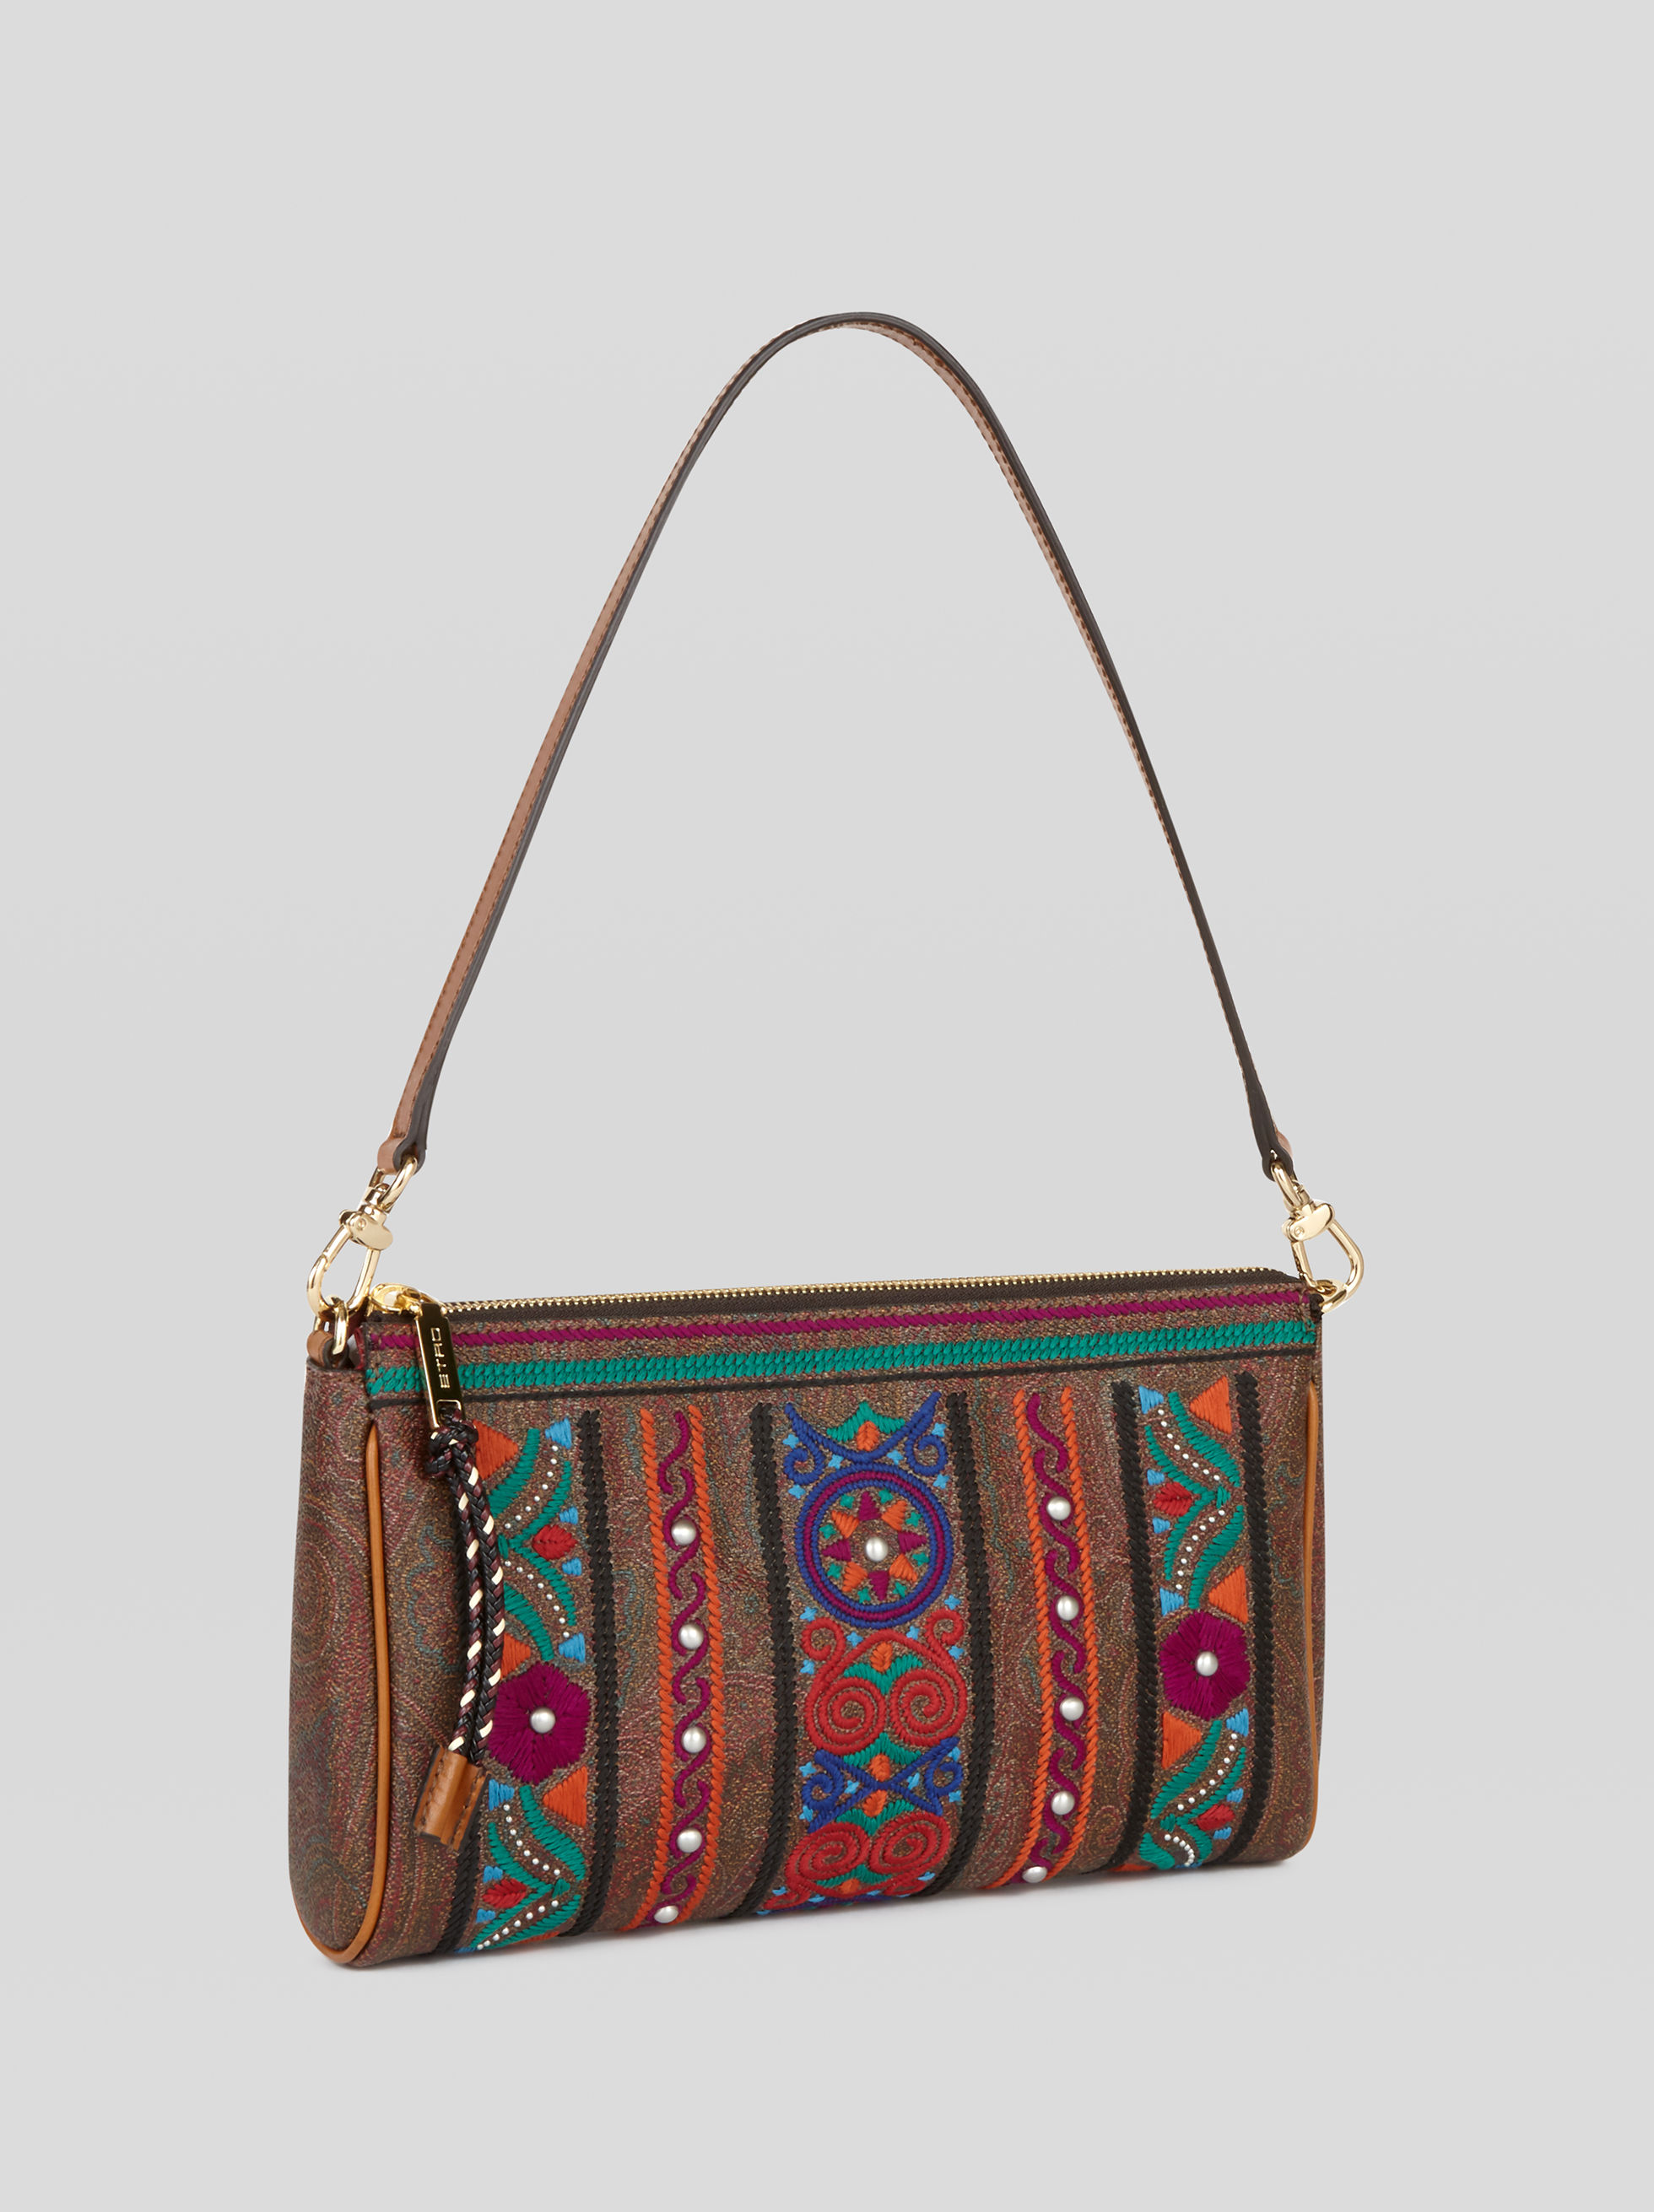 EMBROIDERED PAISLEY SHOULDER BAG